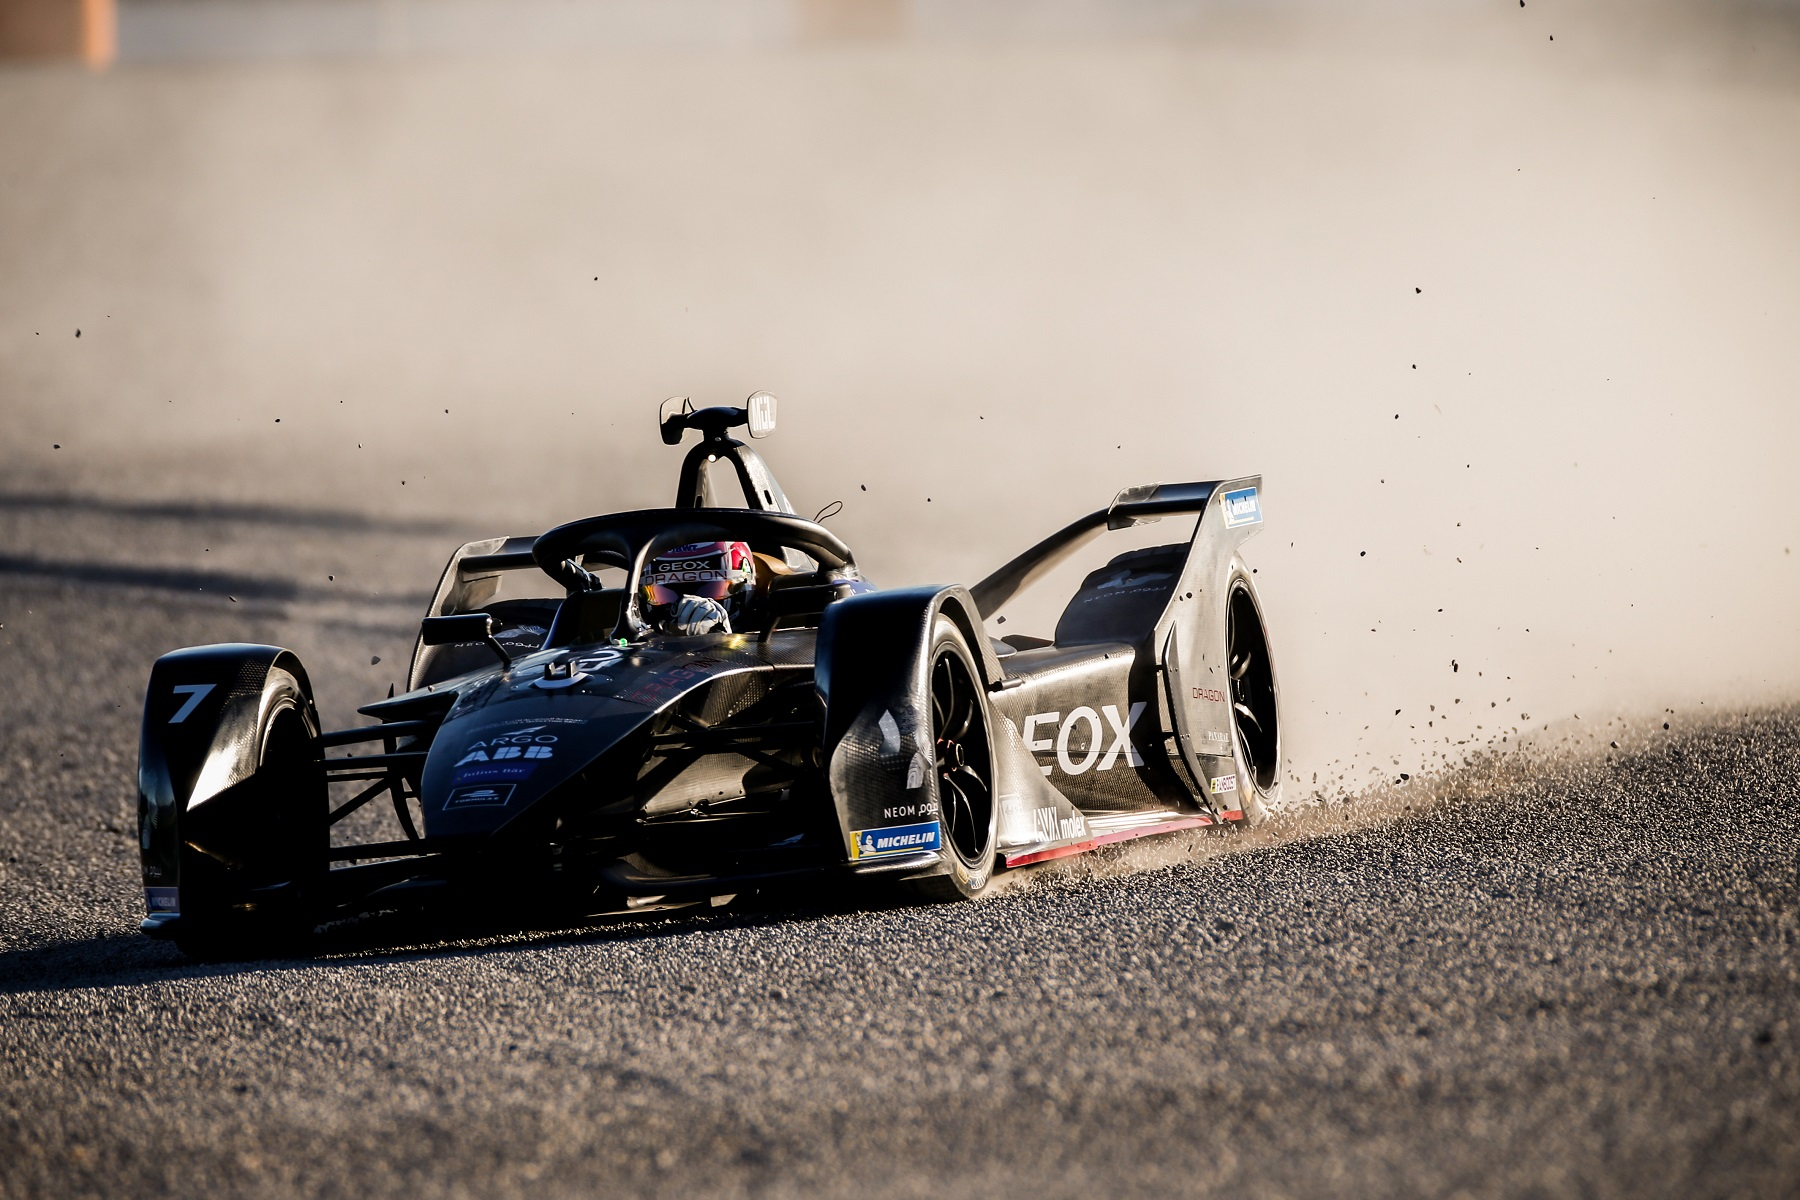 Nico-Müller-Geox-Dragon-Valencia-Test-Day-1-through-the-gravel